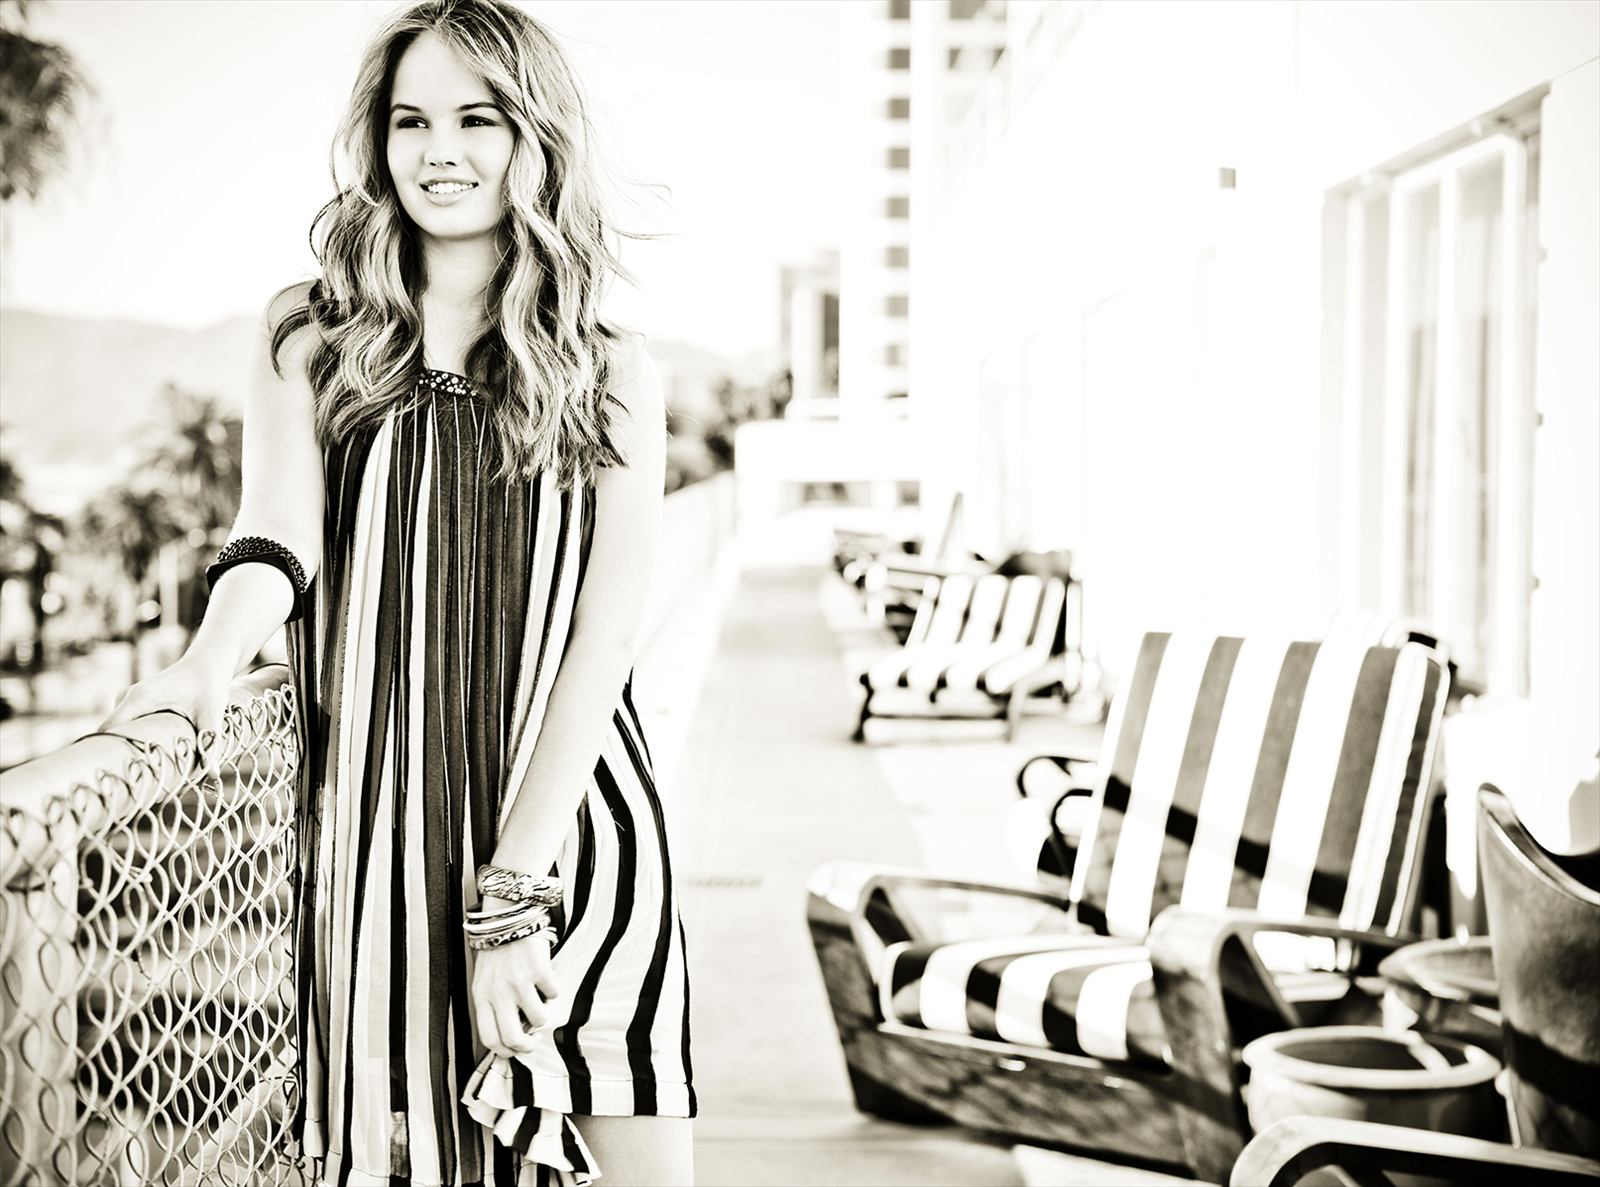 http://images5.fanpop.com/image/photos/25500000/Debby-debby-ryan-25584396-1600-1187.jpg